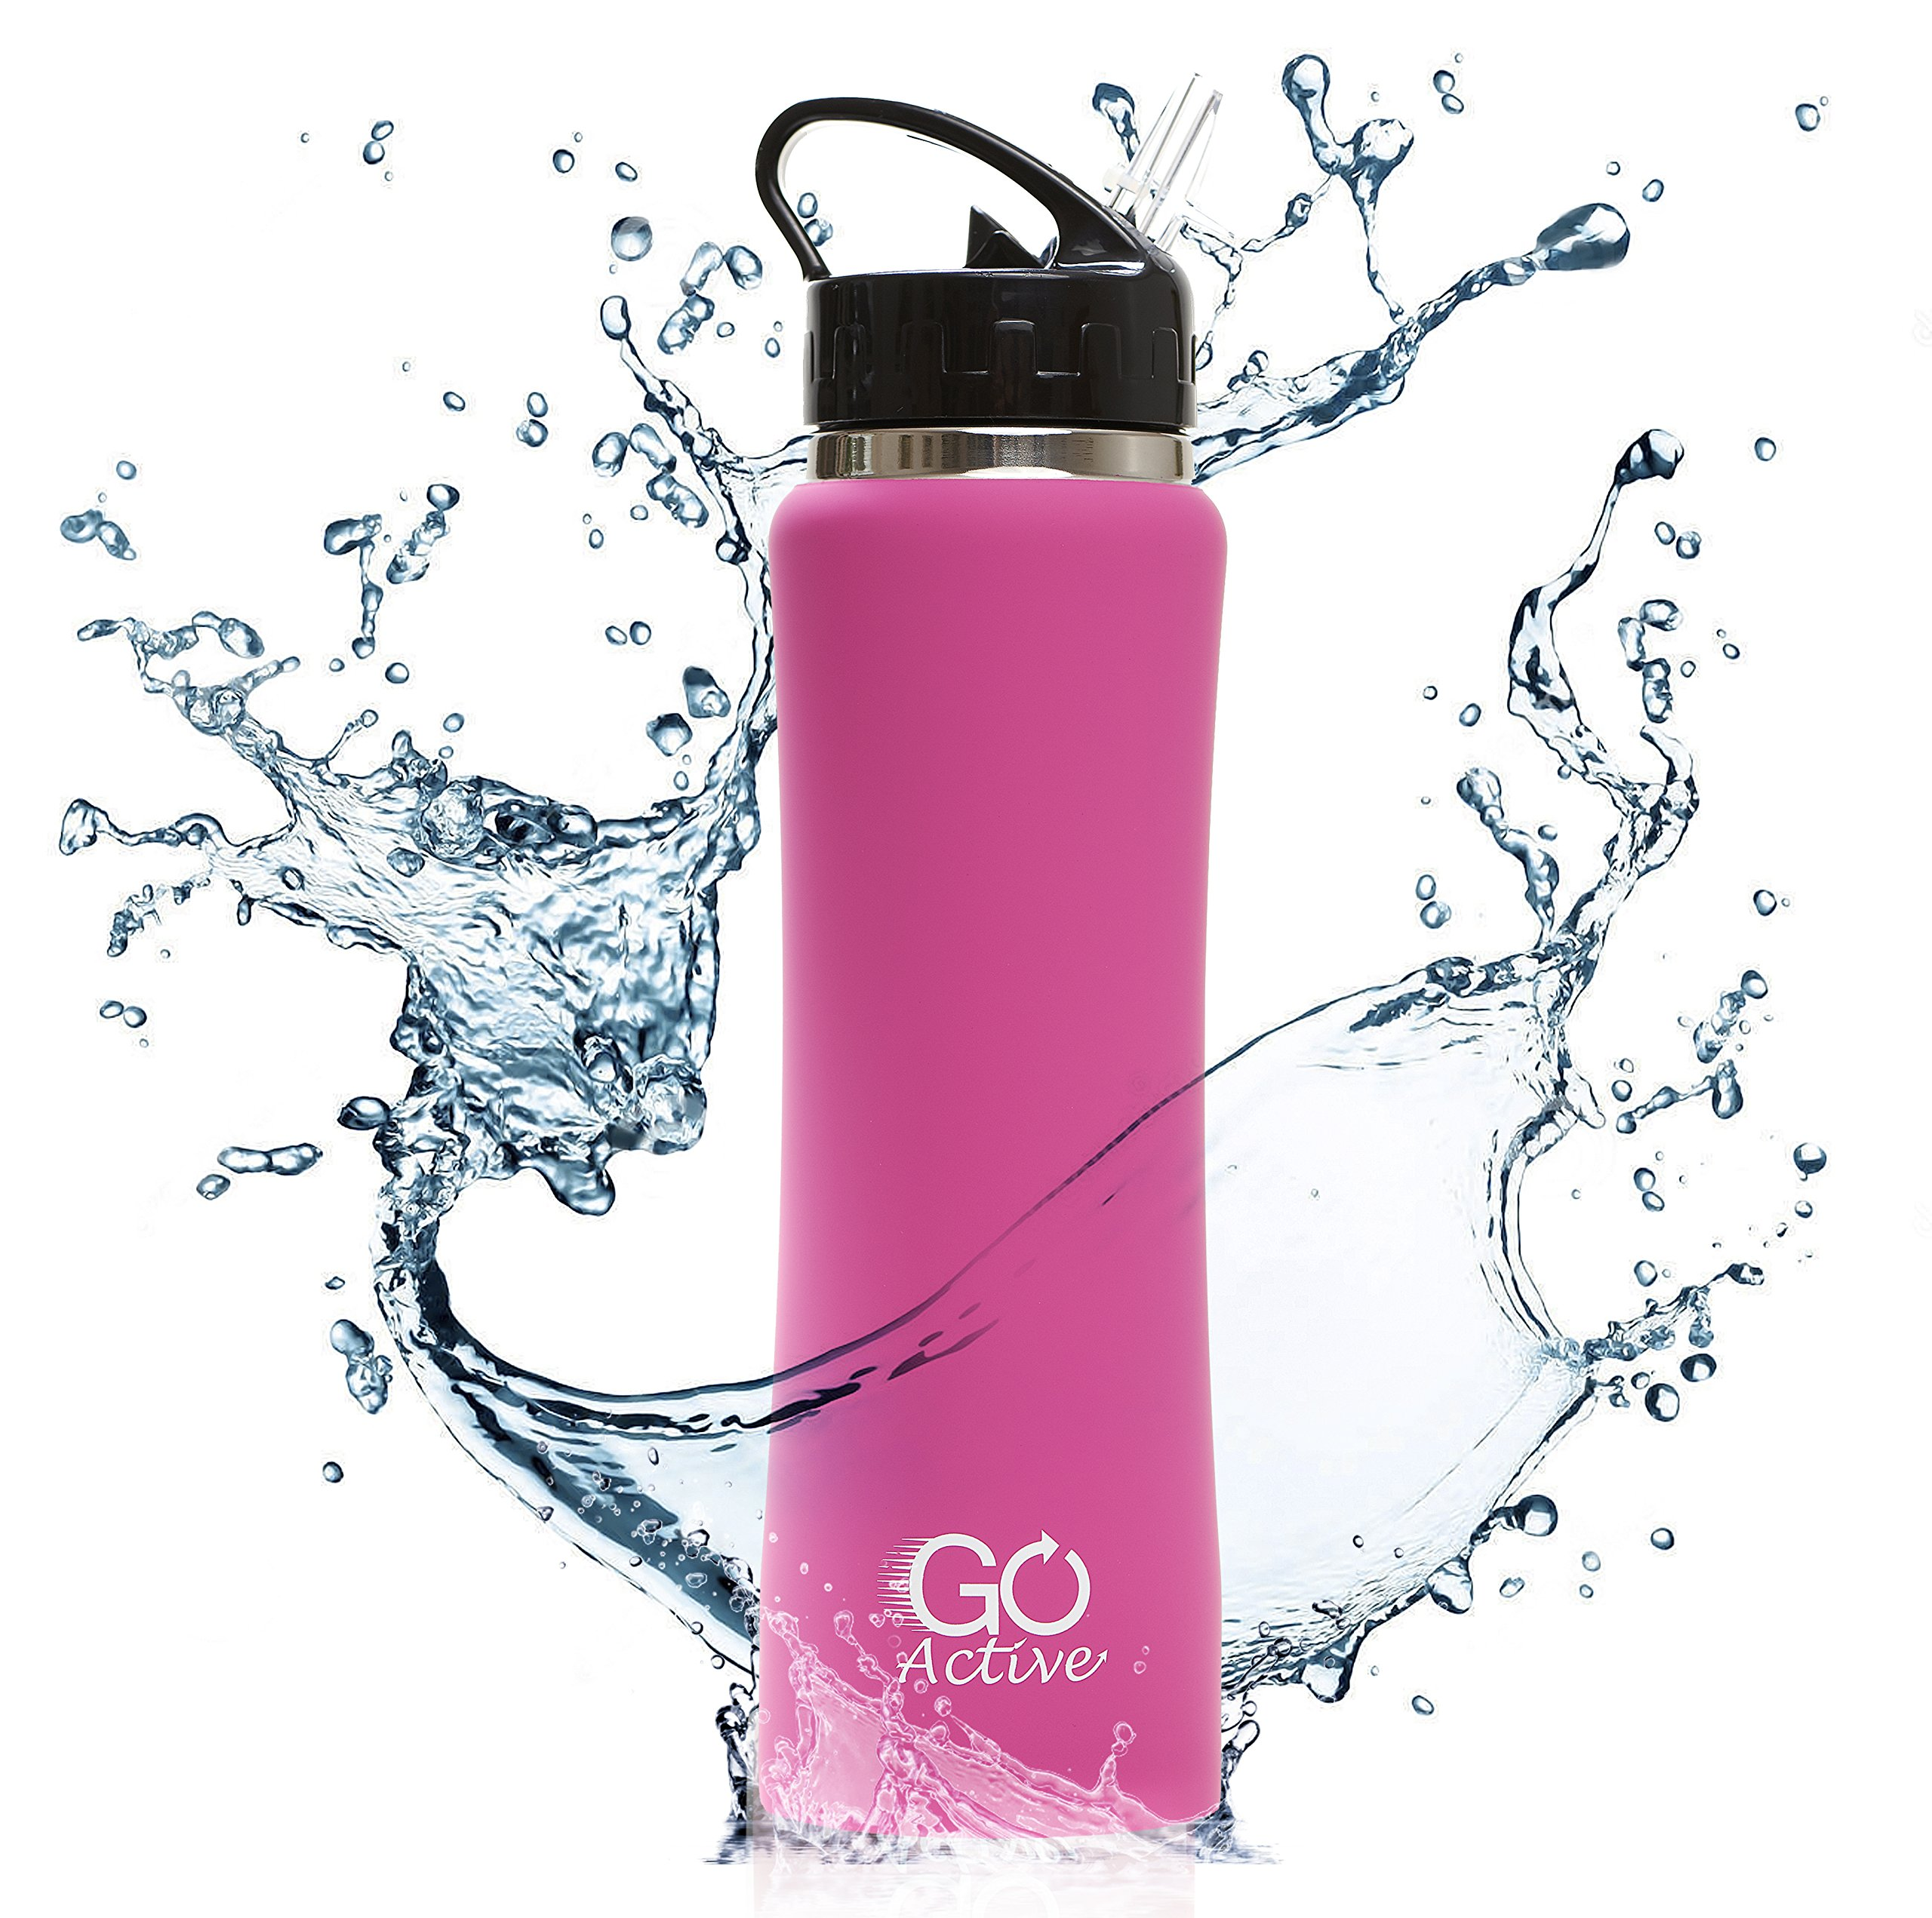 GO Active Insulated Water Bottle Straw. Stainless Steel Double Wall Sport Bottle Featuring ActiveLock Thermal Vacuum Keeps ice Over 24 Hours! Durable, Portable (ActiveGrip Pink, 24 oz)